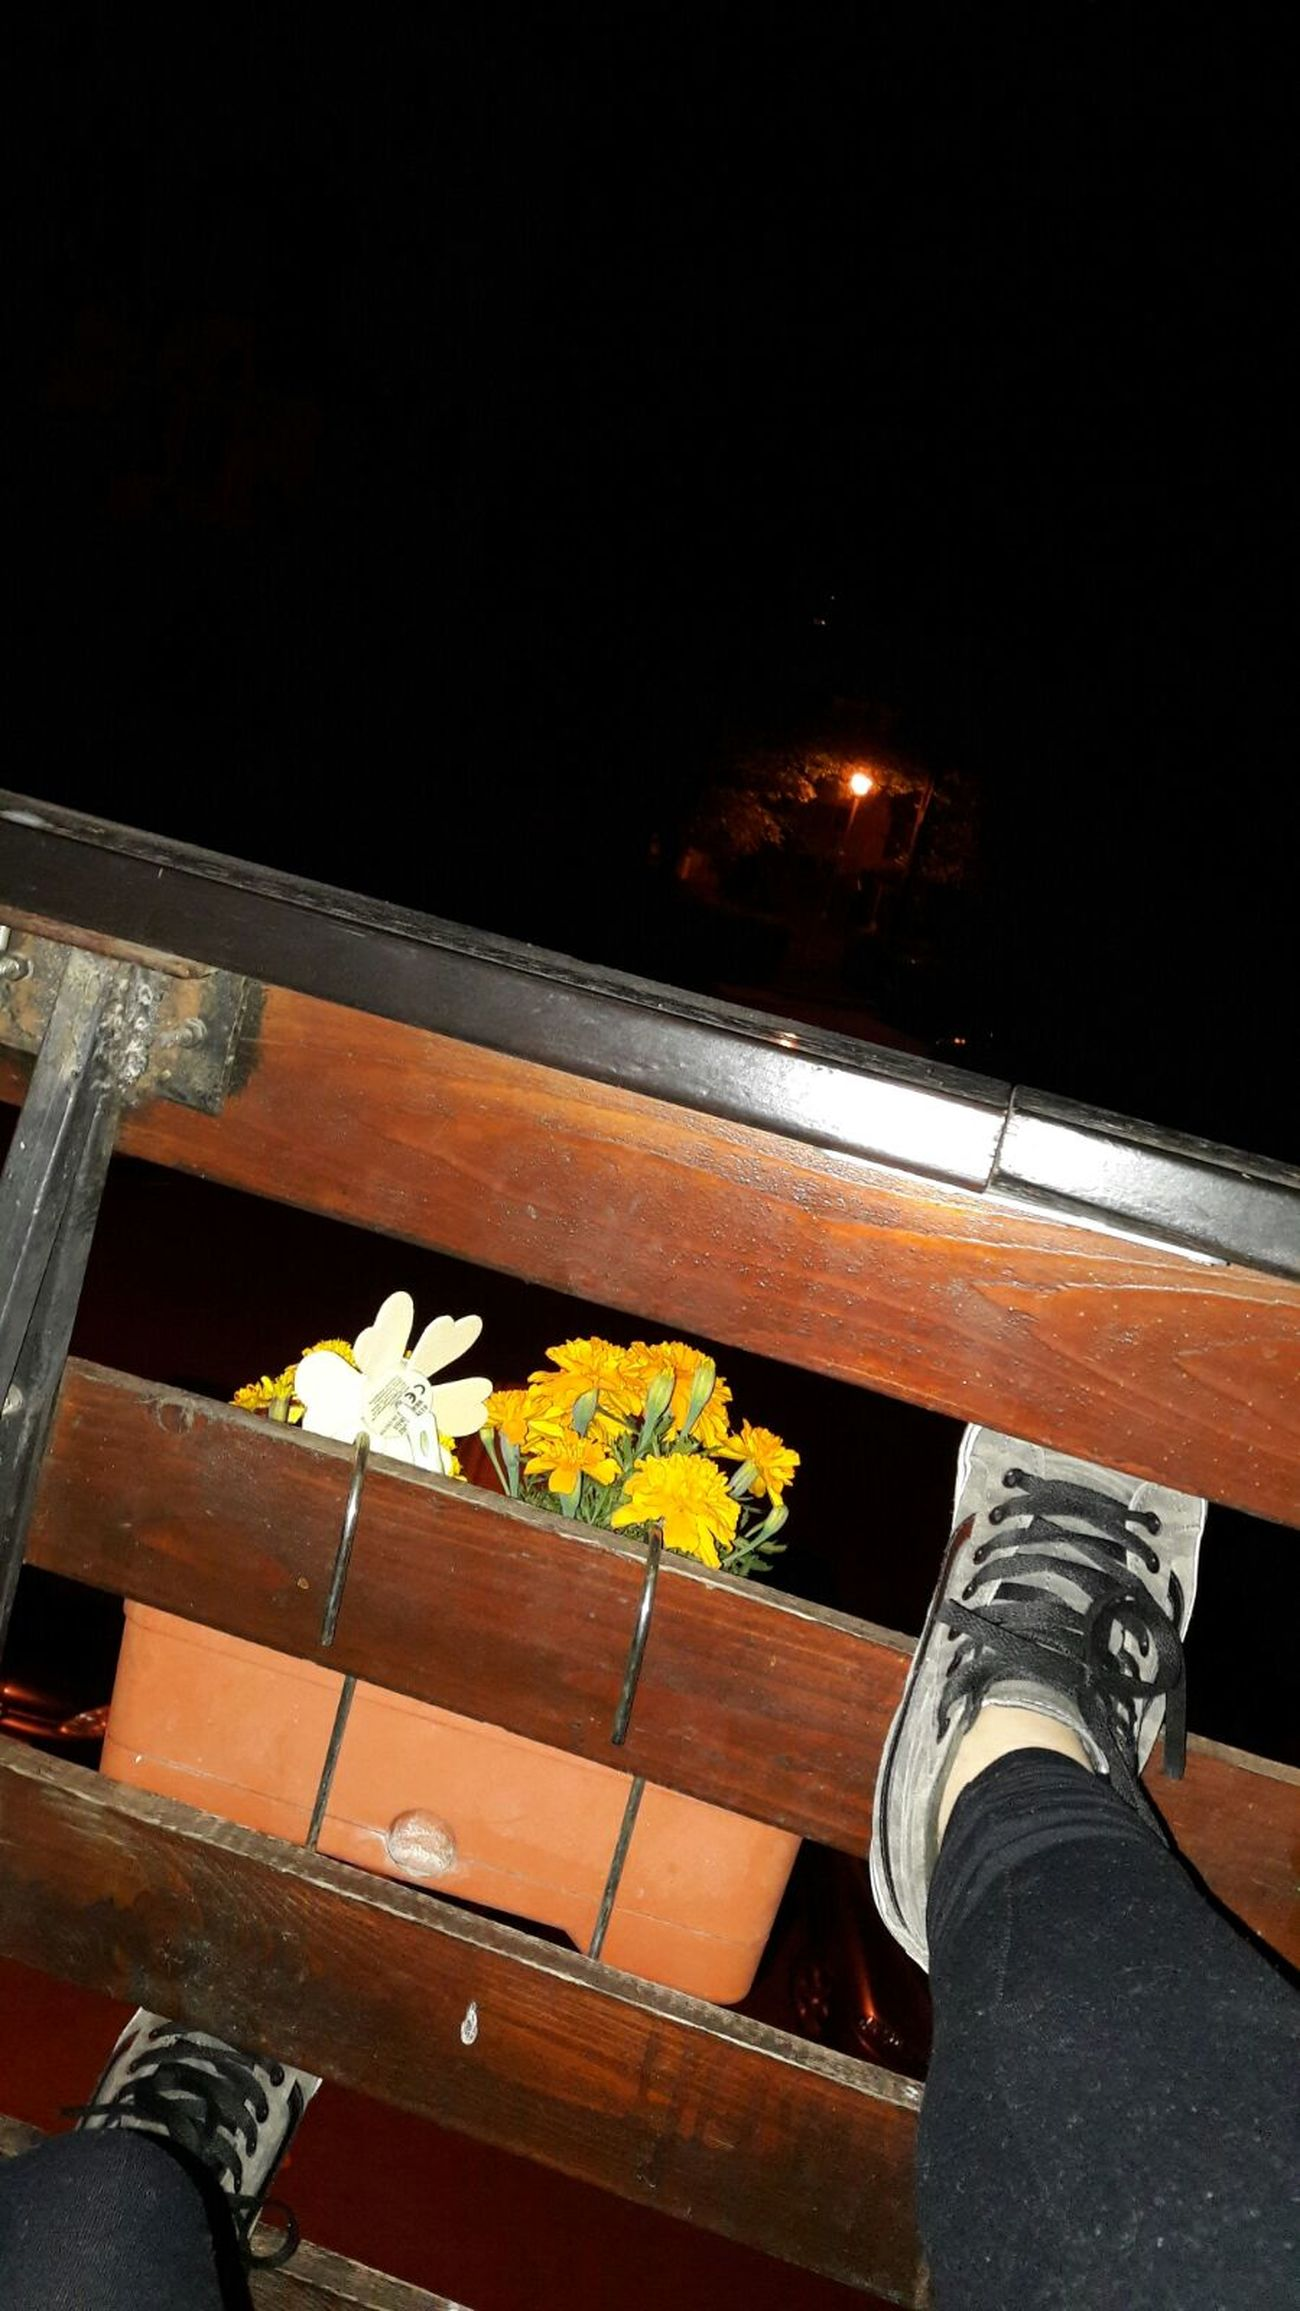 In Craiova, Romania, for a fencing contest. Night Dark Feet Flowers Relaxing Chilling ✌ No Filter